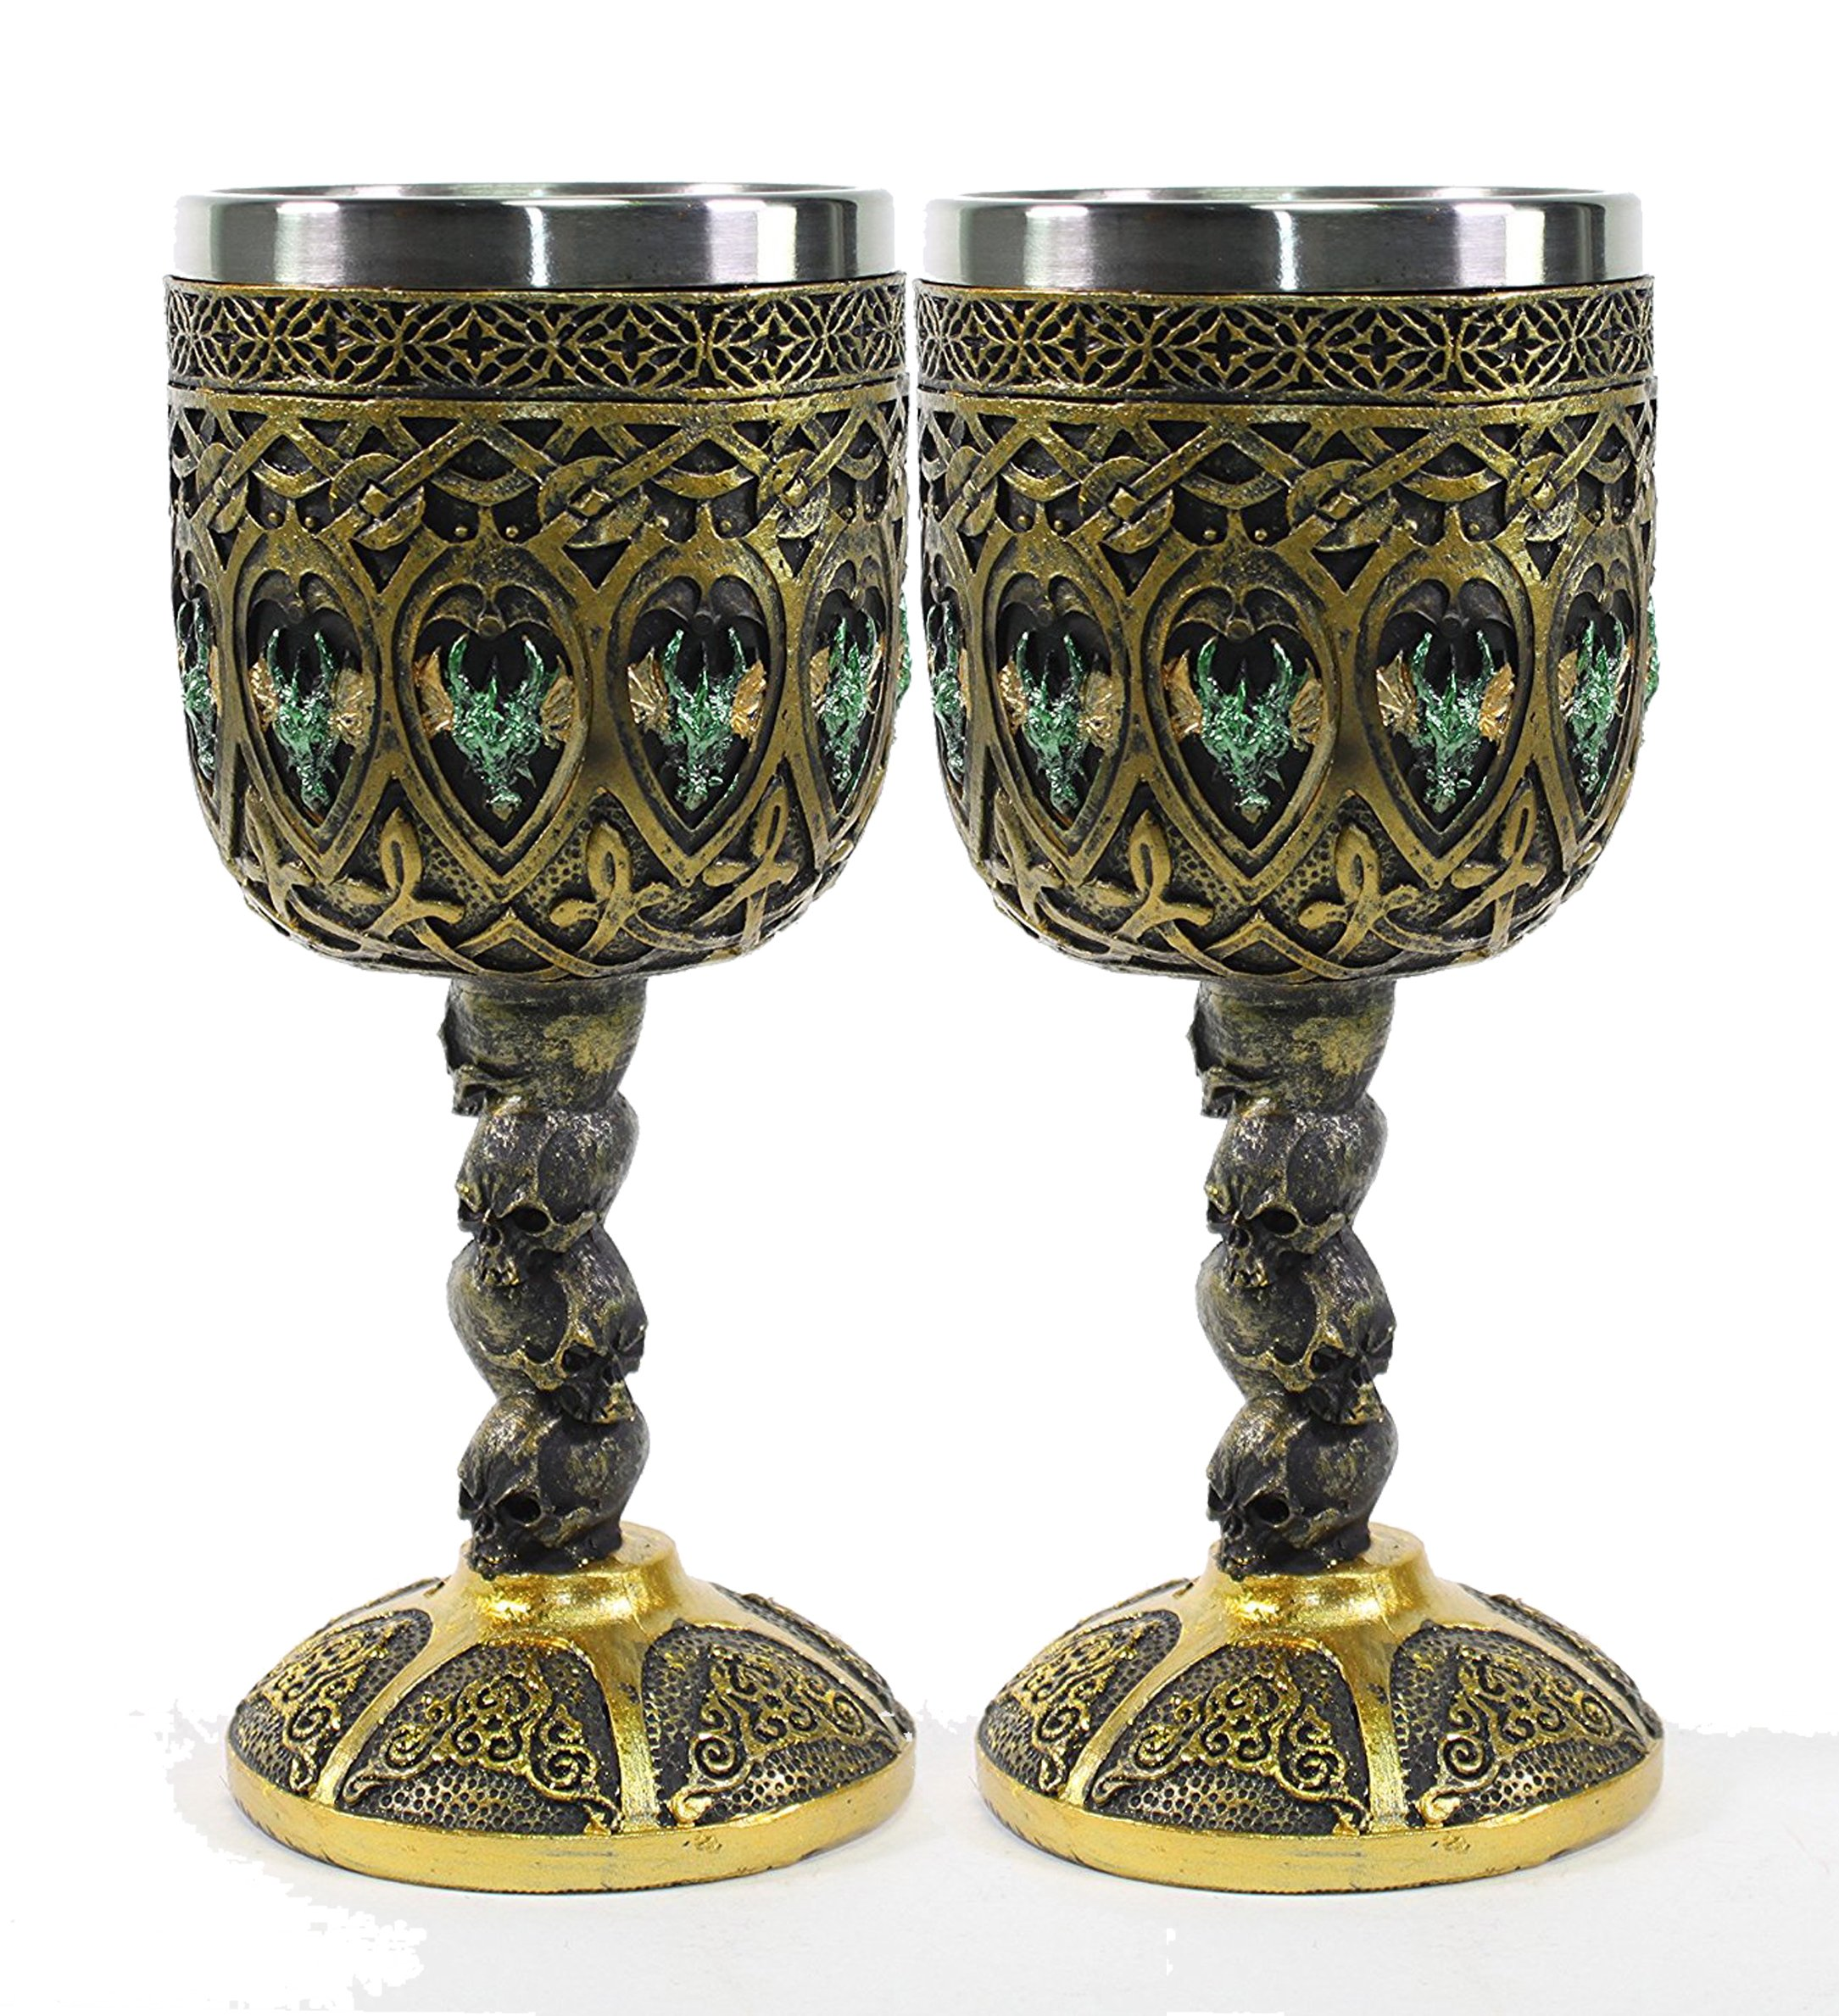 Mythical Bronze Royal Dragon Wine Goblet Skulls Medieval Collectible Magical Halloween Party Home Decor Gift (G16595) ~ We Pay Your Sales Tax